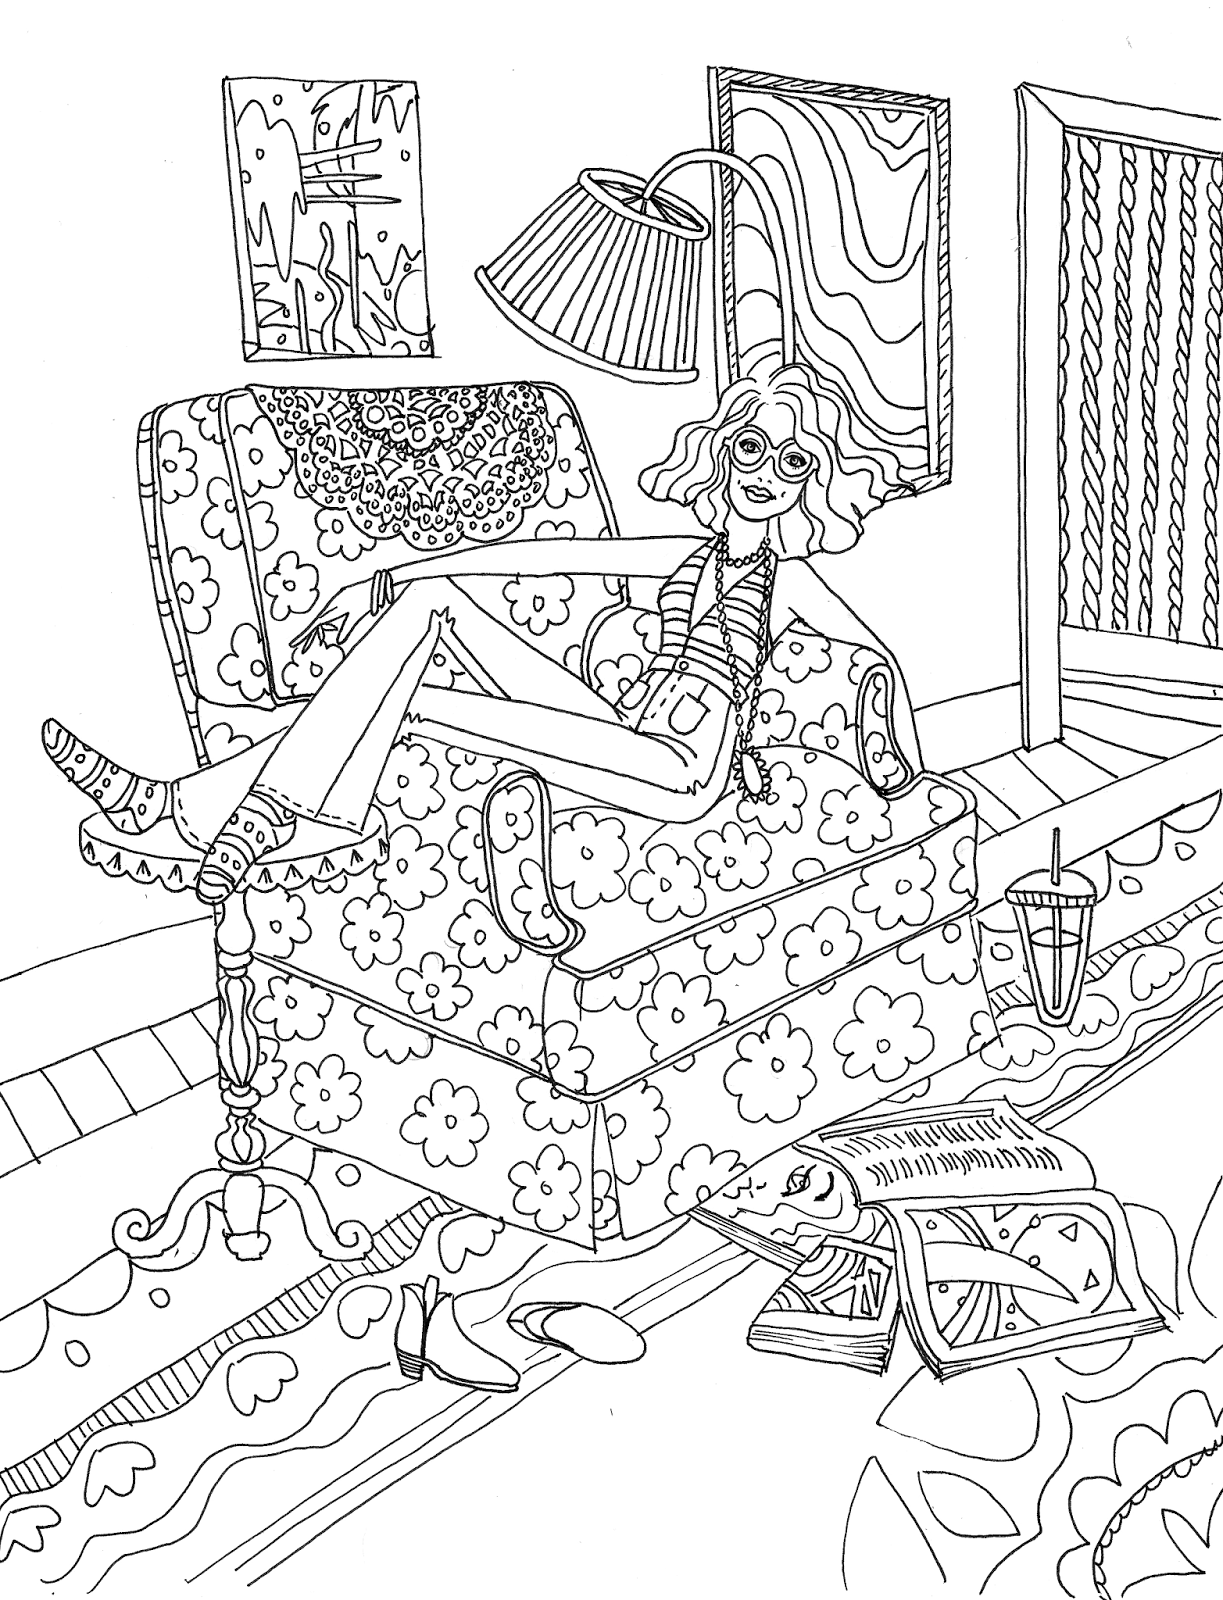 The Spinsterhood Diaries: Coloring Page: Inspired by Laura